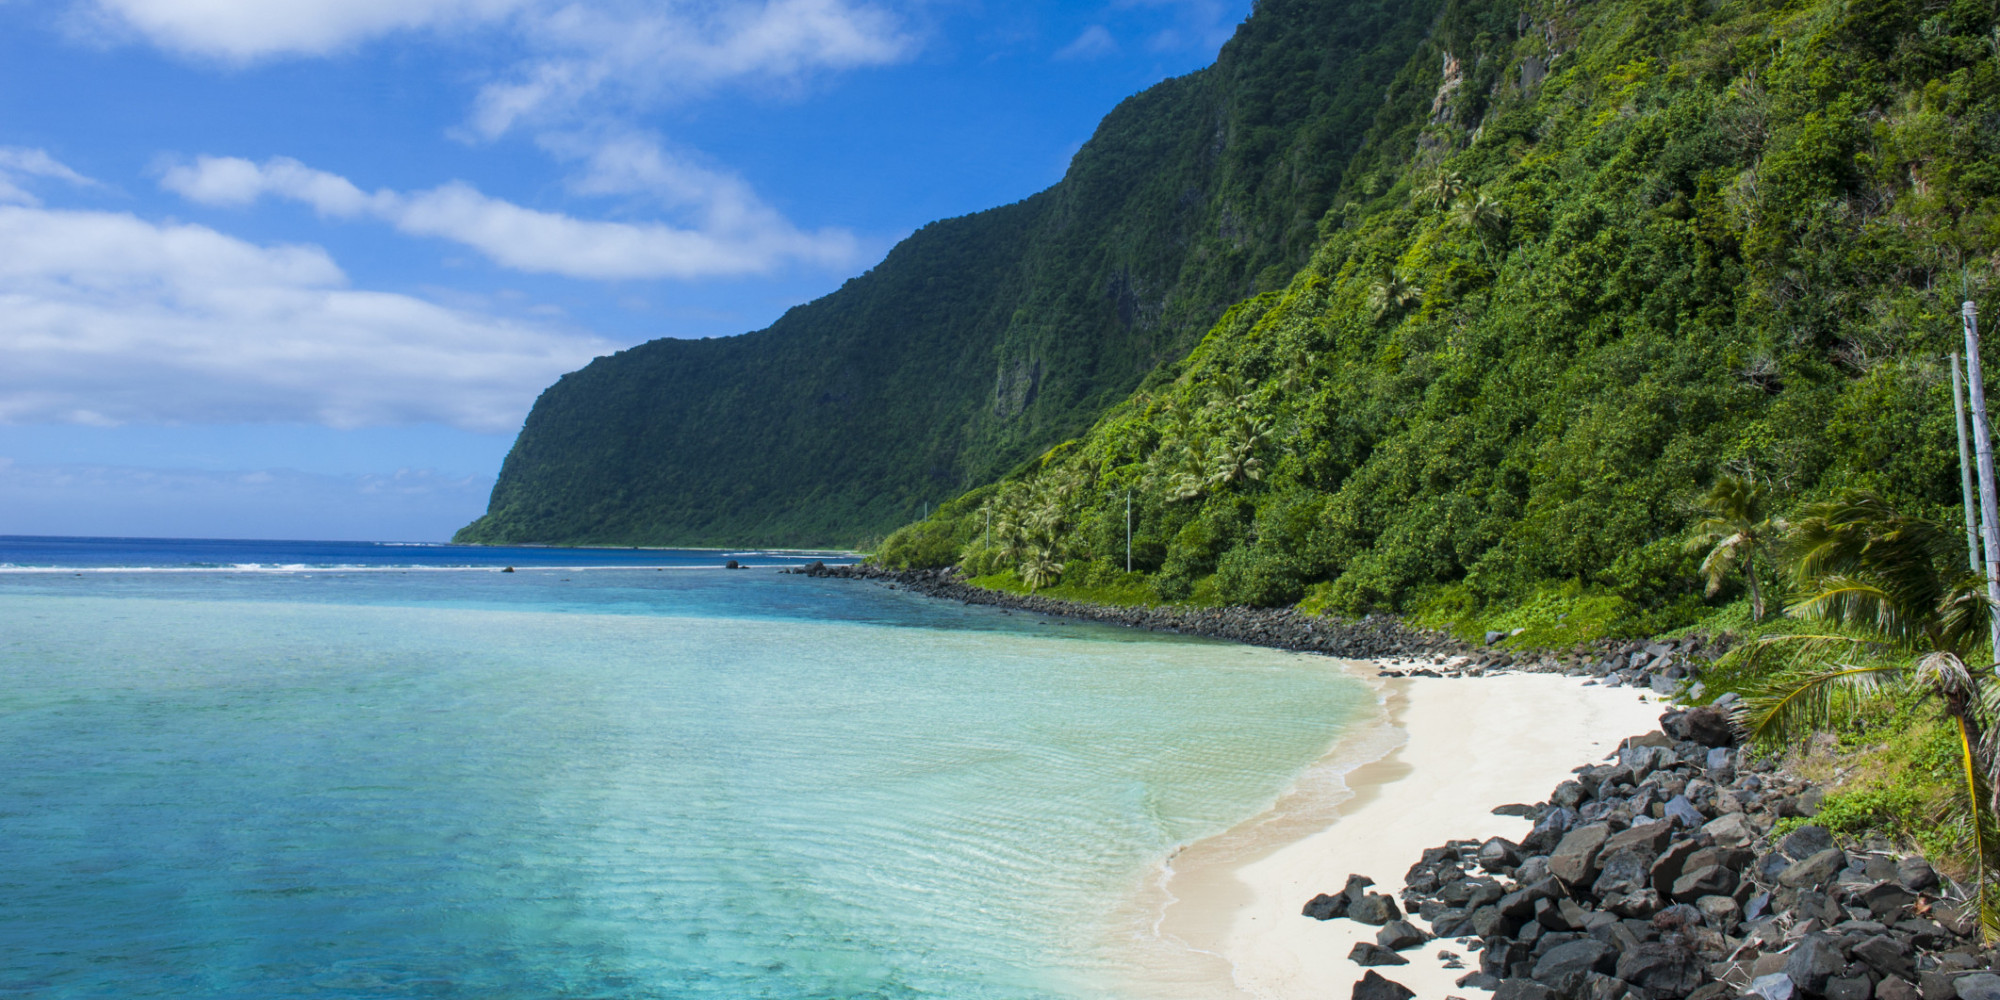 American Samoa Is The Empty Slice Of Bliss You've Been Craving: www.huffingtonpost.com/2014/09/05/american-samoa-travel_n_5725106.html